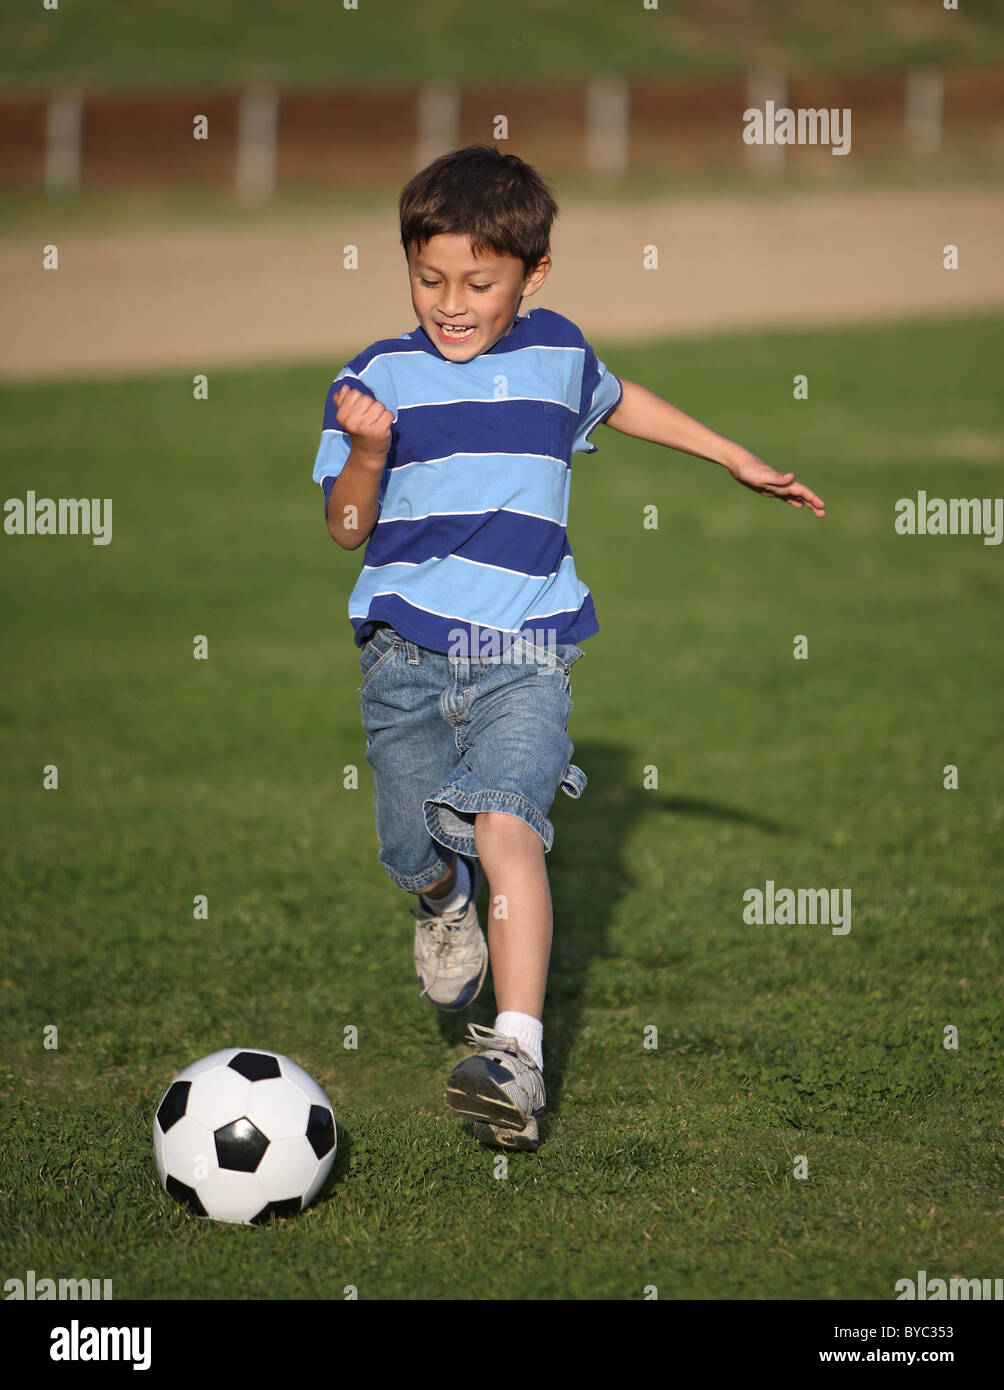 Authentic happy Latino boy playing with soccer ball in field wearing blue striped tee shirt. - Stock Image